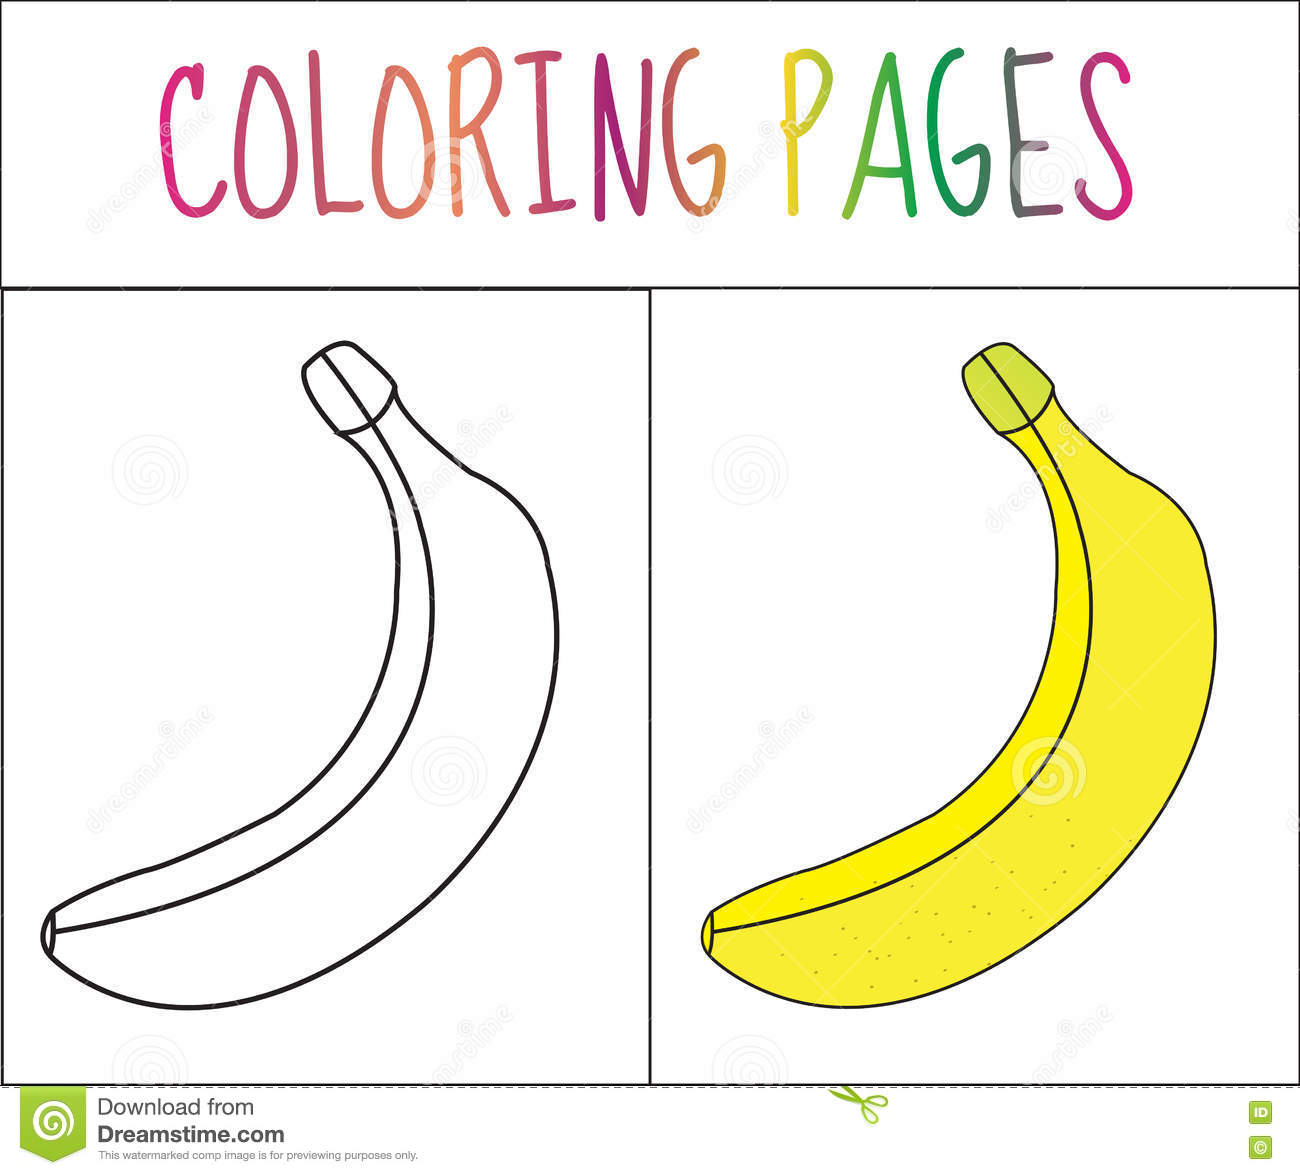 coloring book page banana sketch and color version coloring for